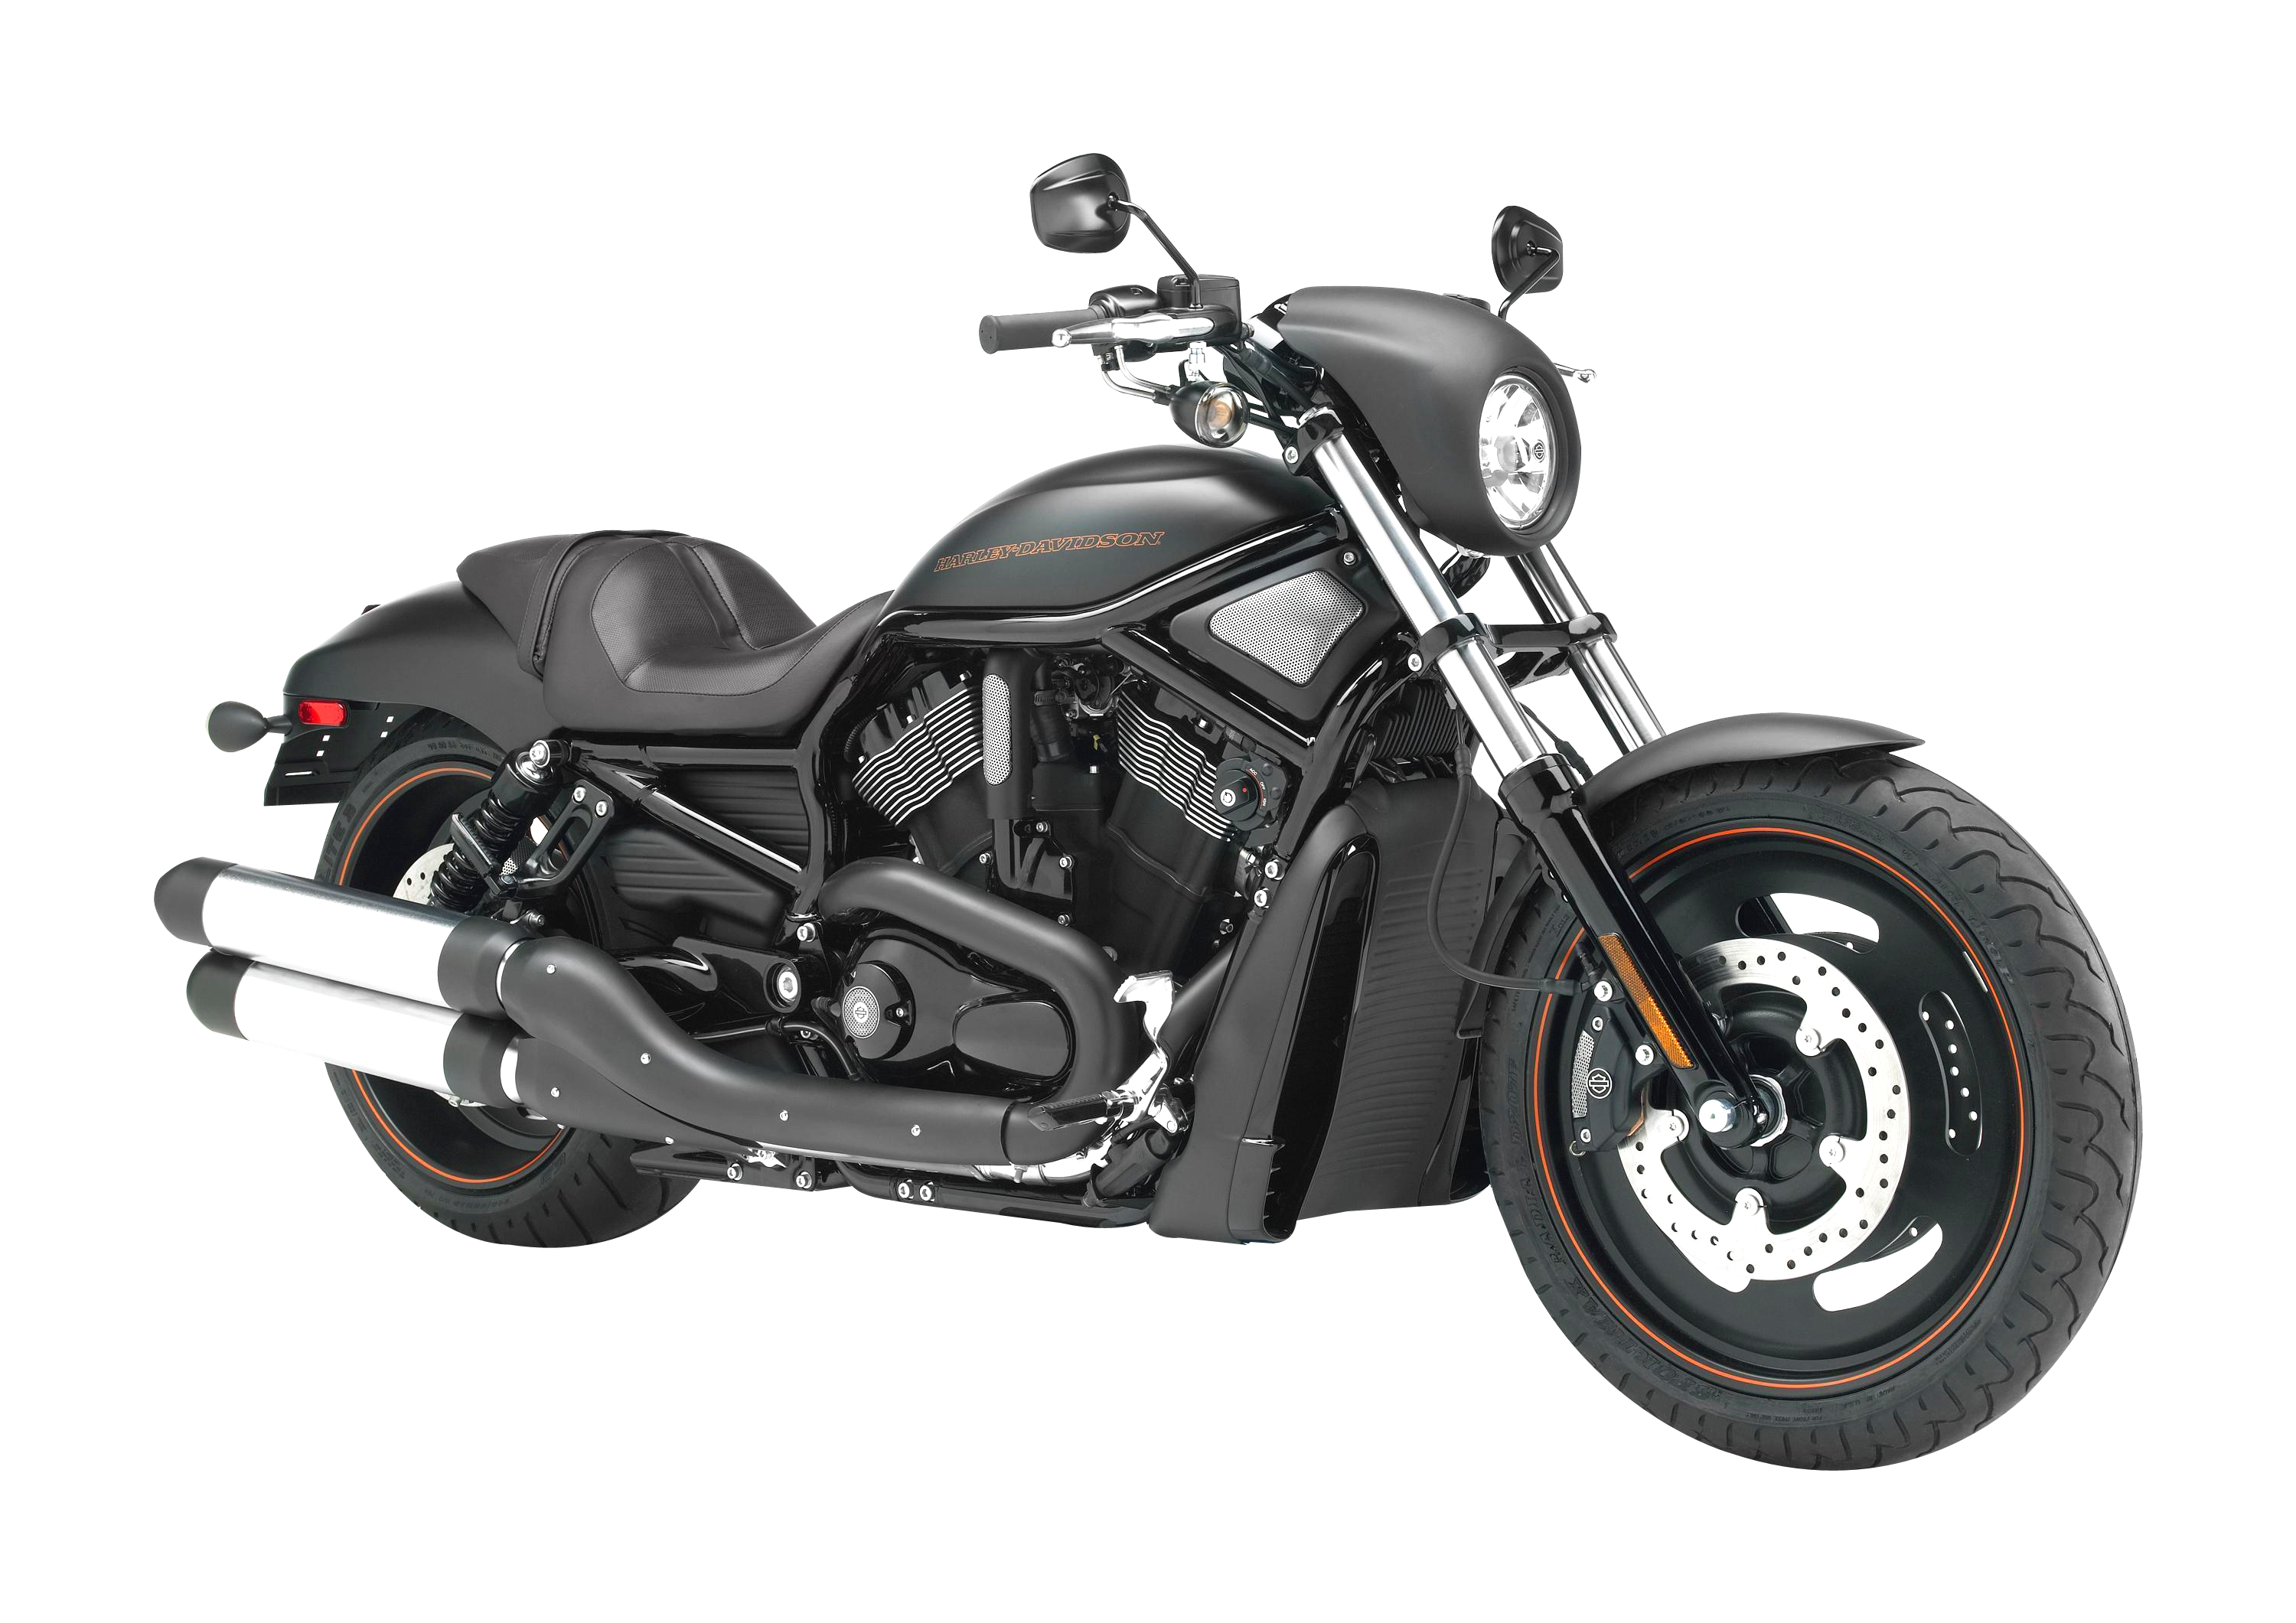 where motorcycle png  Motorbike HD PNG Transparent Motorbike HD.PNG Images. | PlusPNG